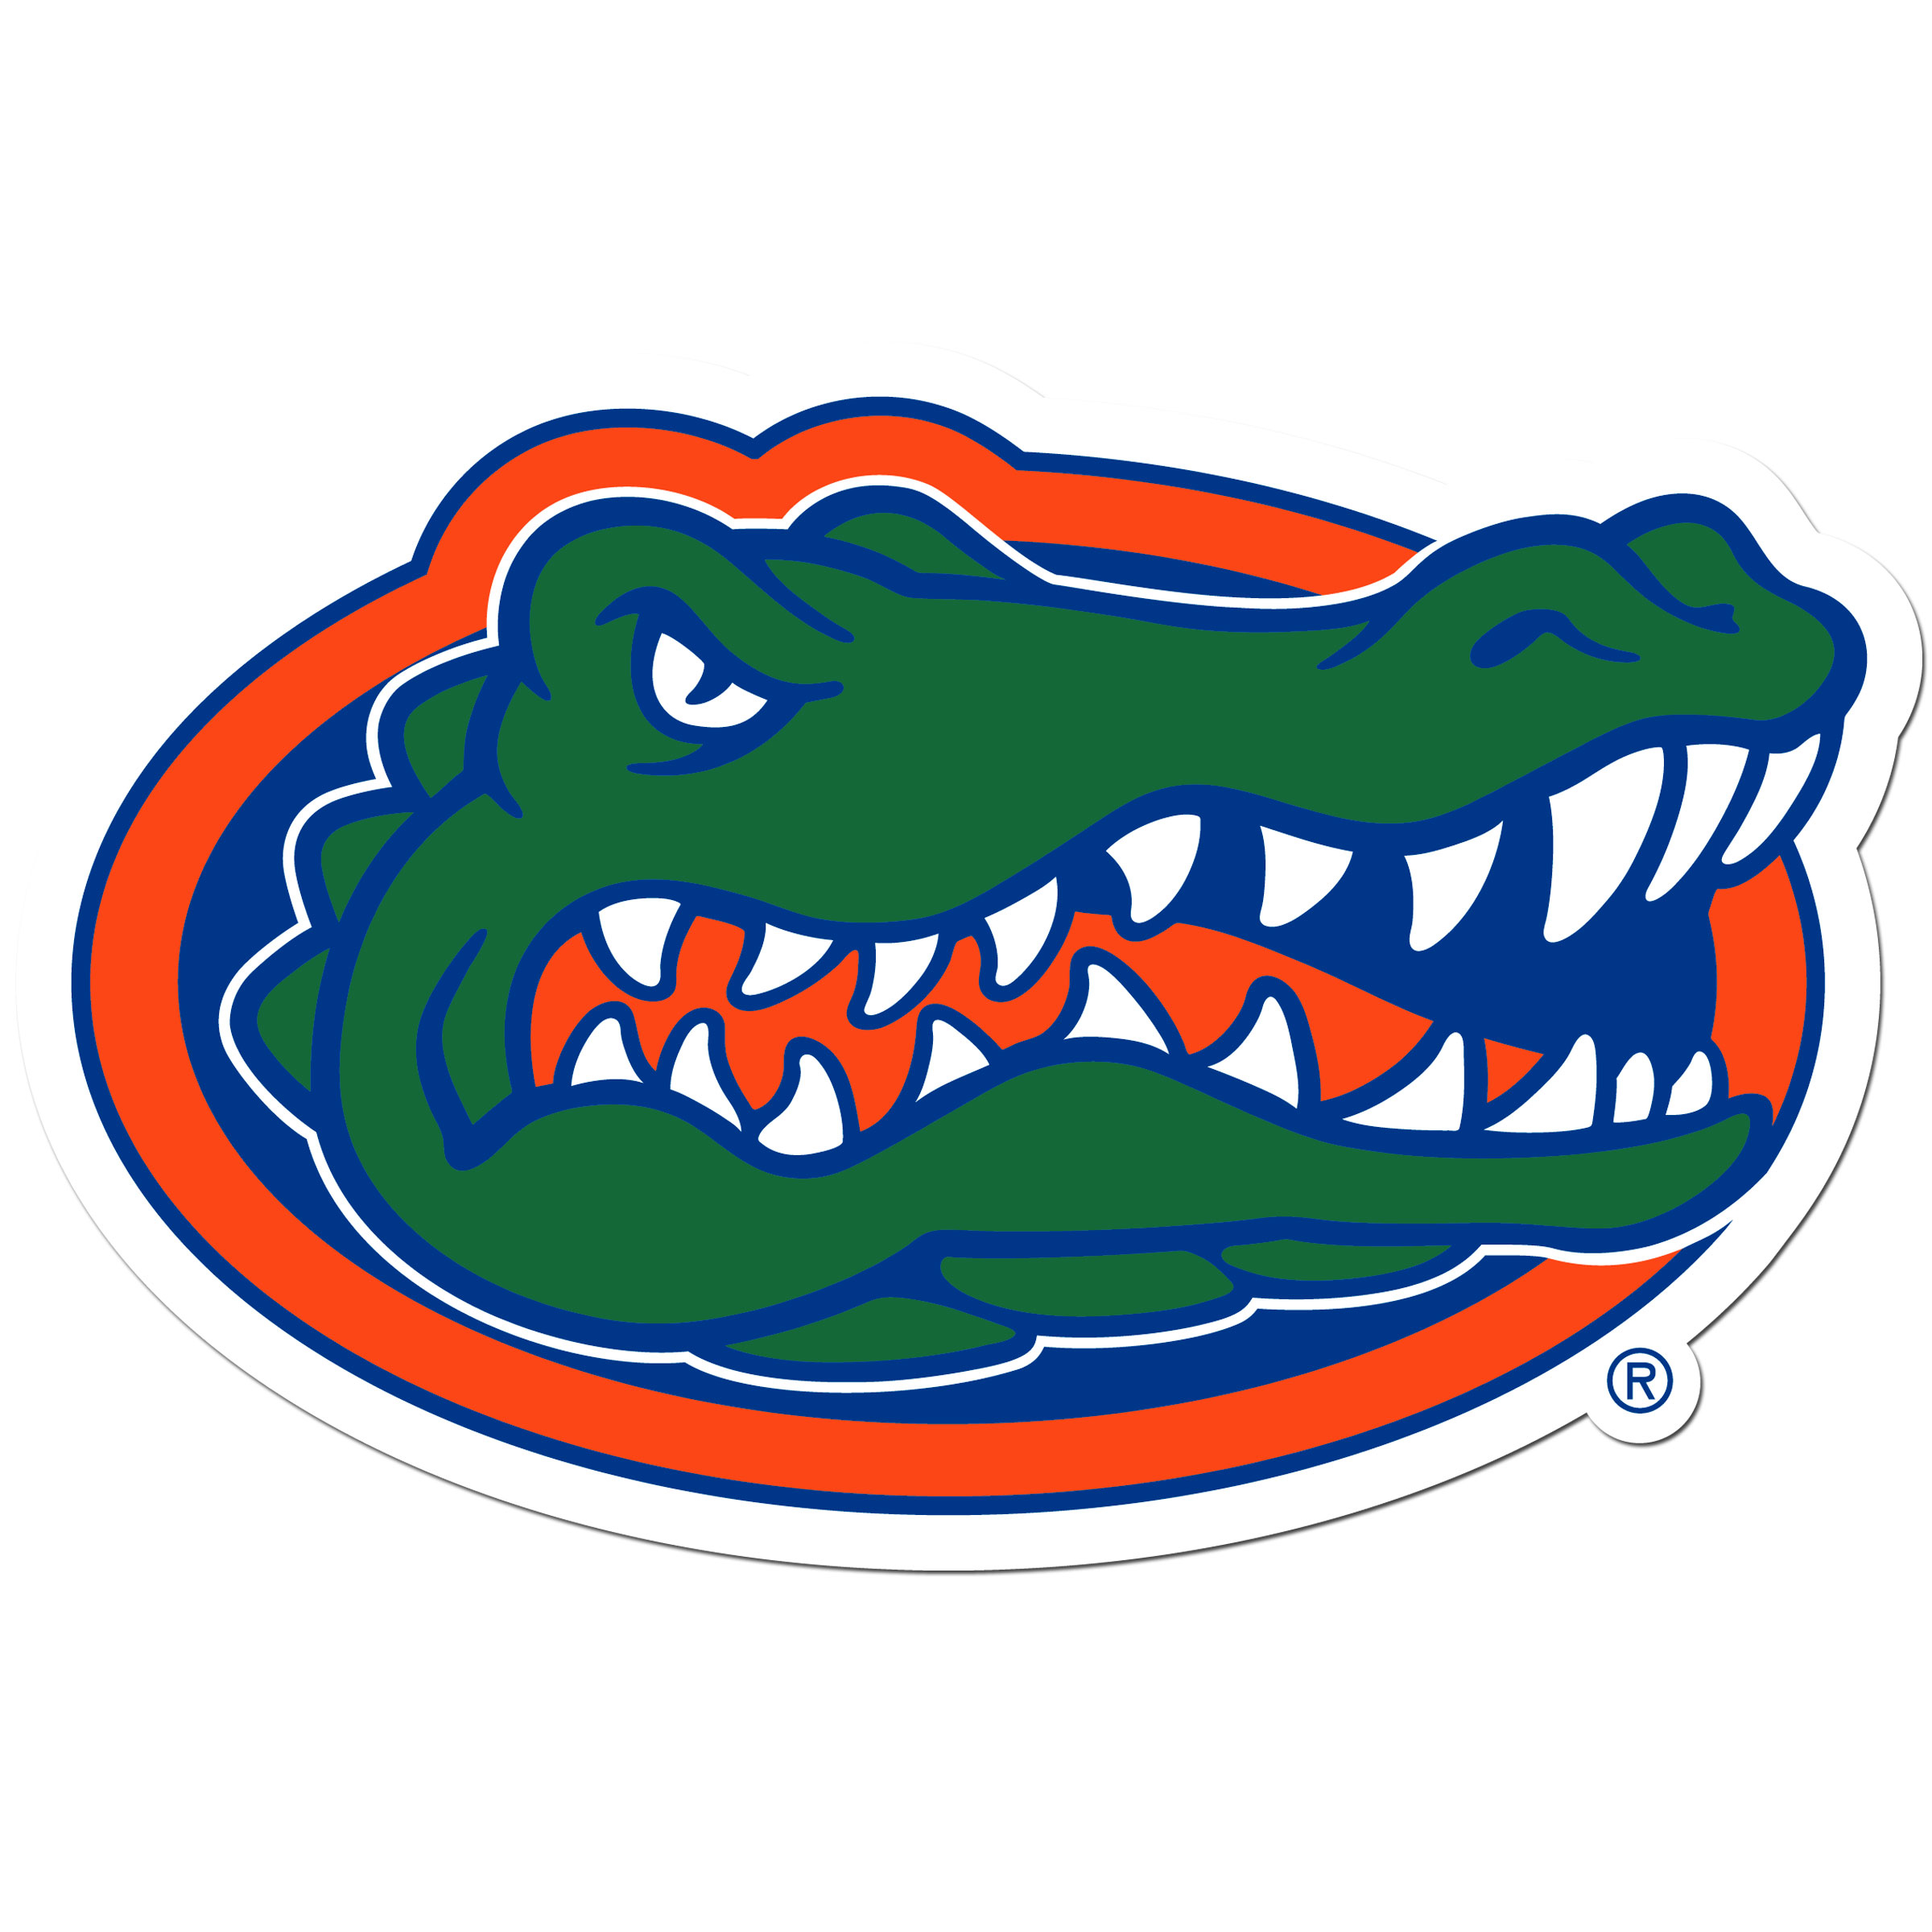 Florida Gators 8 inch Auto Decal - This bold, 8 inch Florida Gators is a great way to show off your team pride! The low tack vinyl decal is easily positioned and adjusted to make sure you get that logo in just the right spot on your vehicle. Designed to be used on the outside of the window.